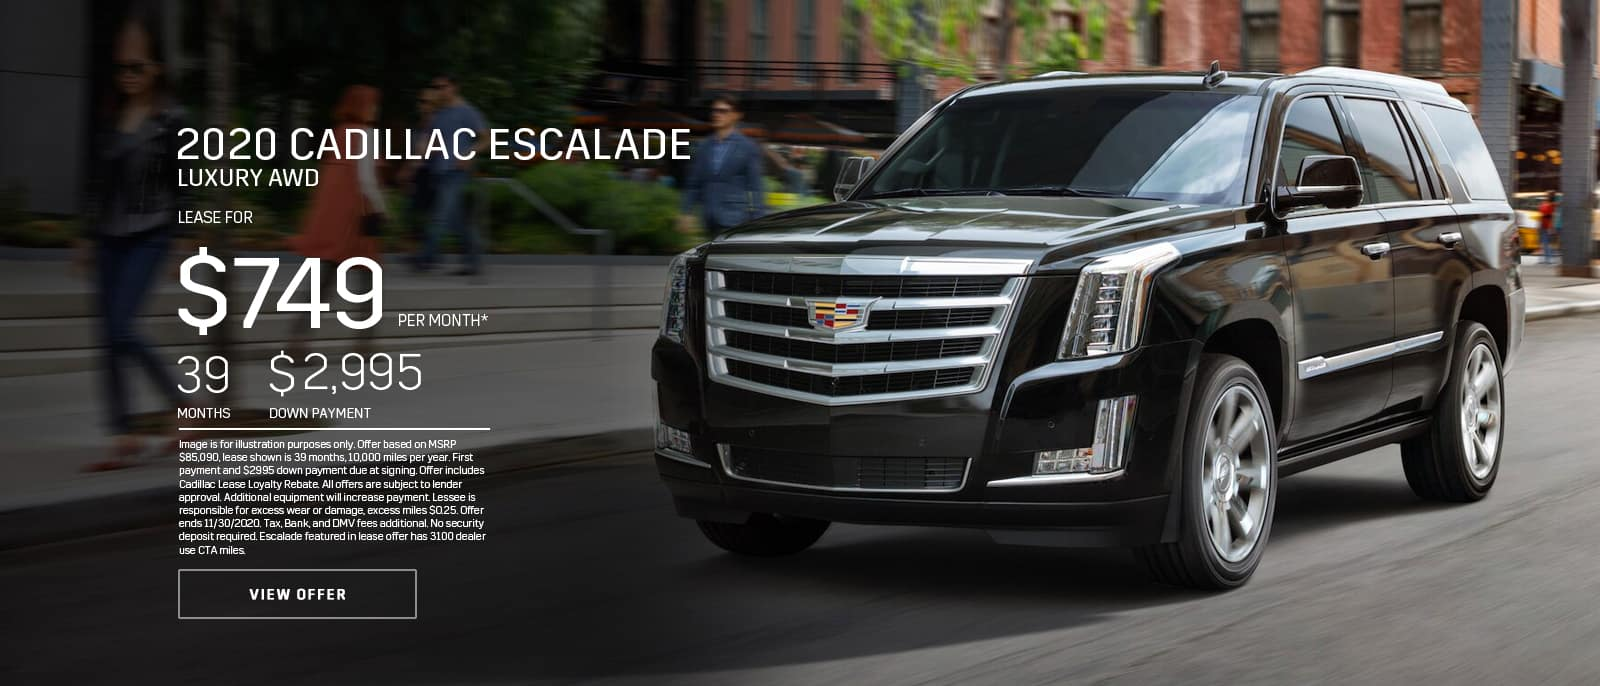 2020 ESCALADE LUXURY AWD